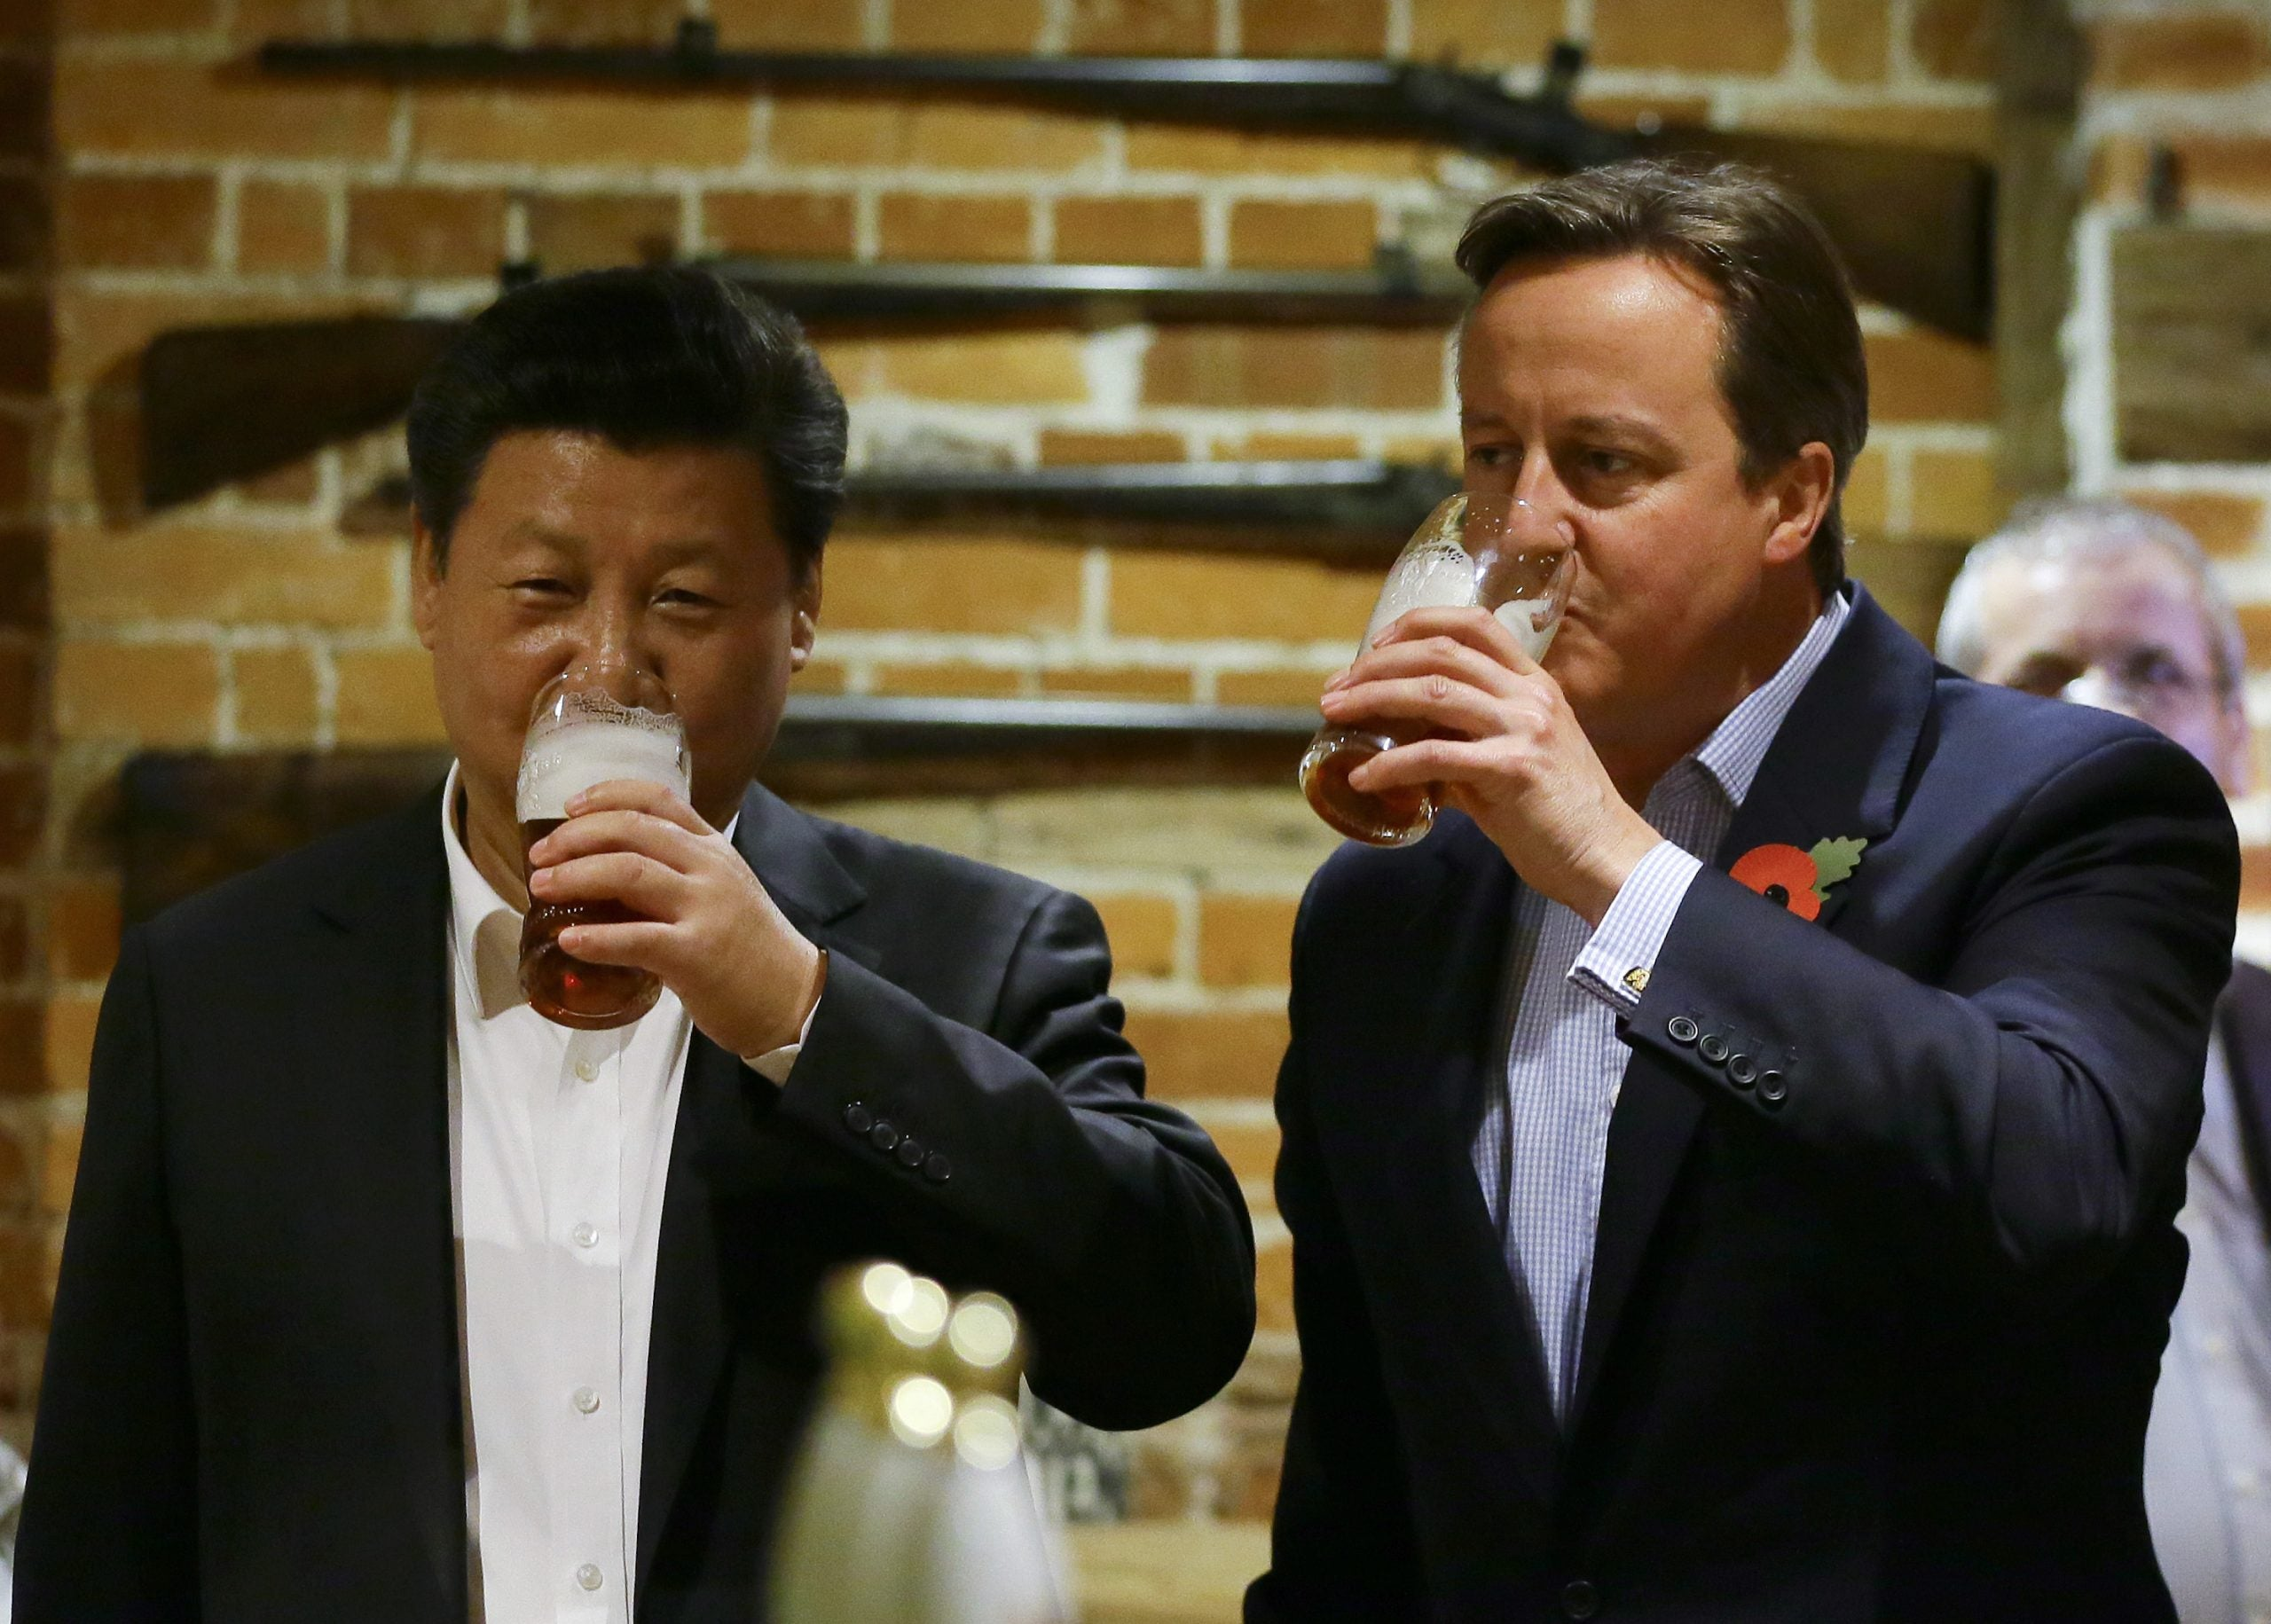 We are living in a world made by Xi Jinping – and Britain is desperate to find its place in it